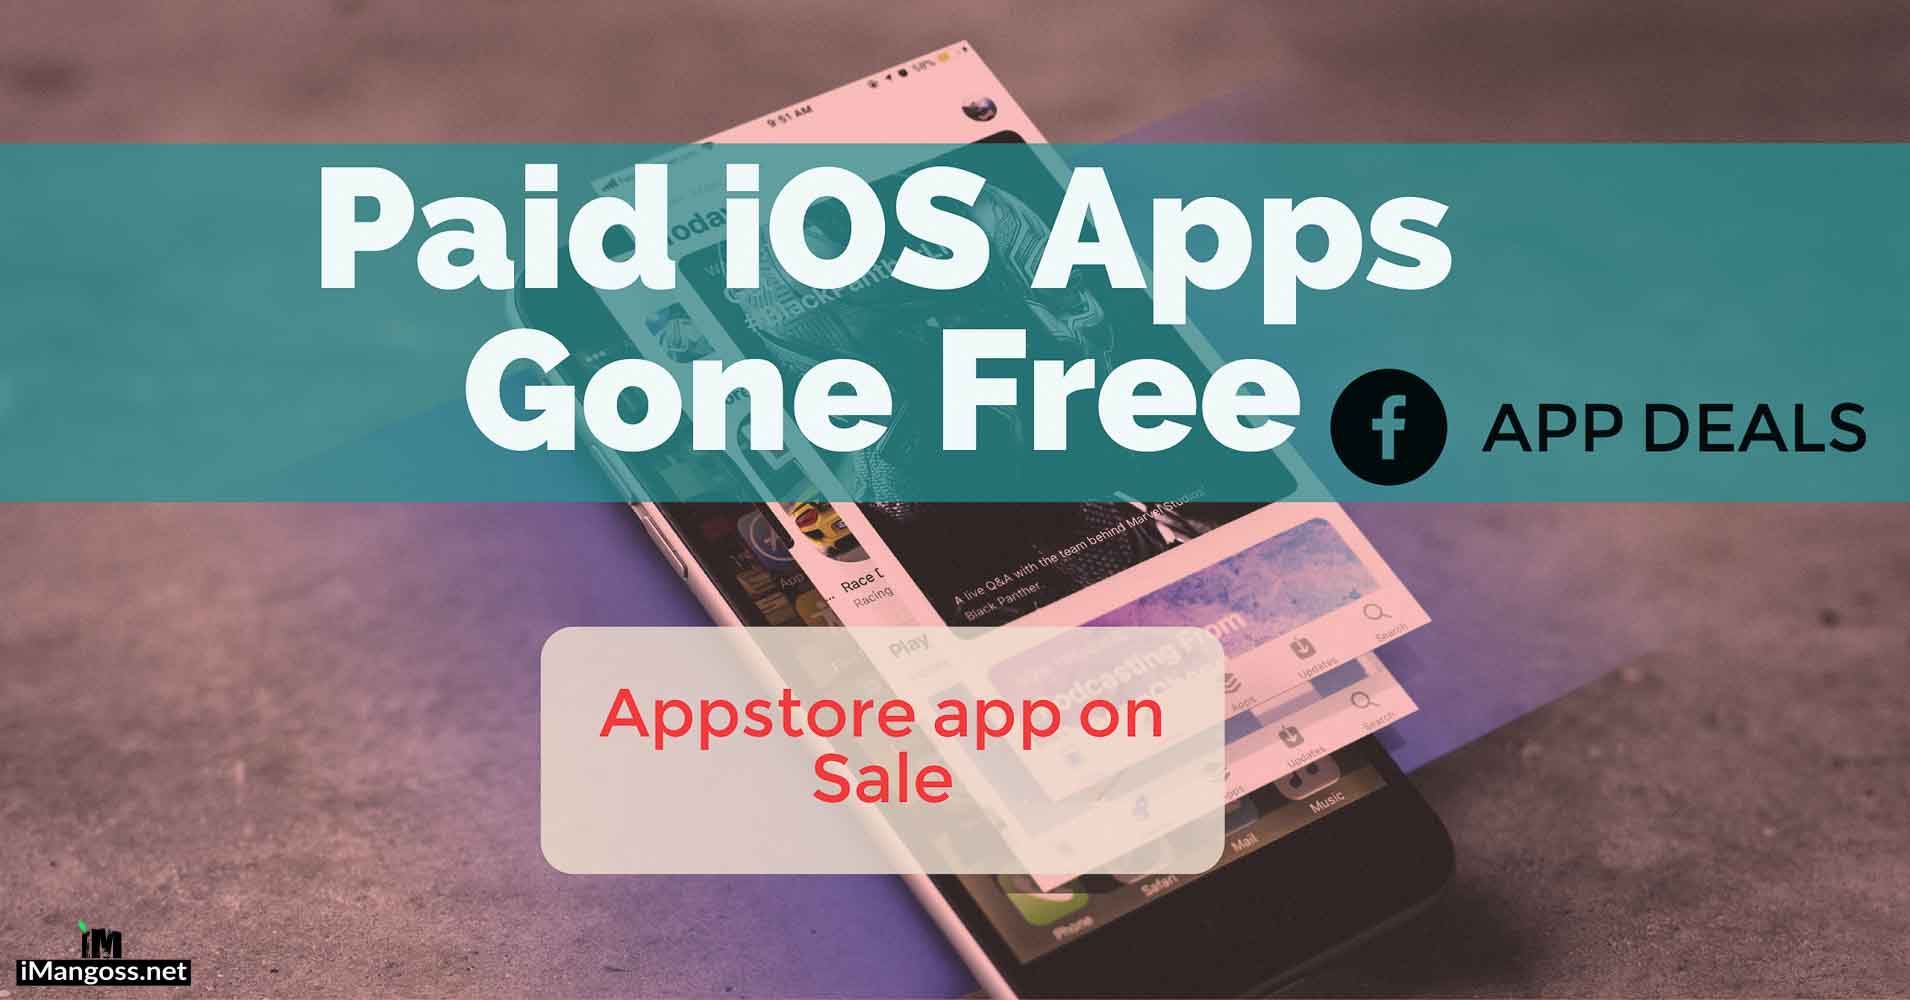 paid iphone apps gone free march 29 2018